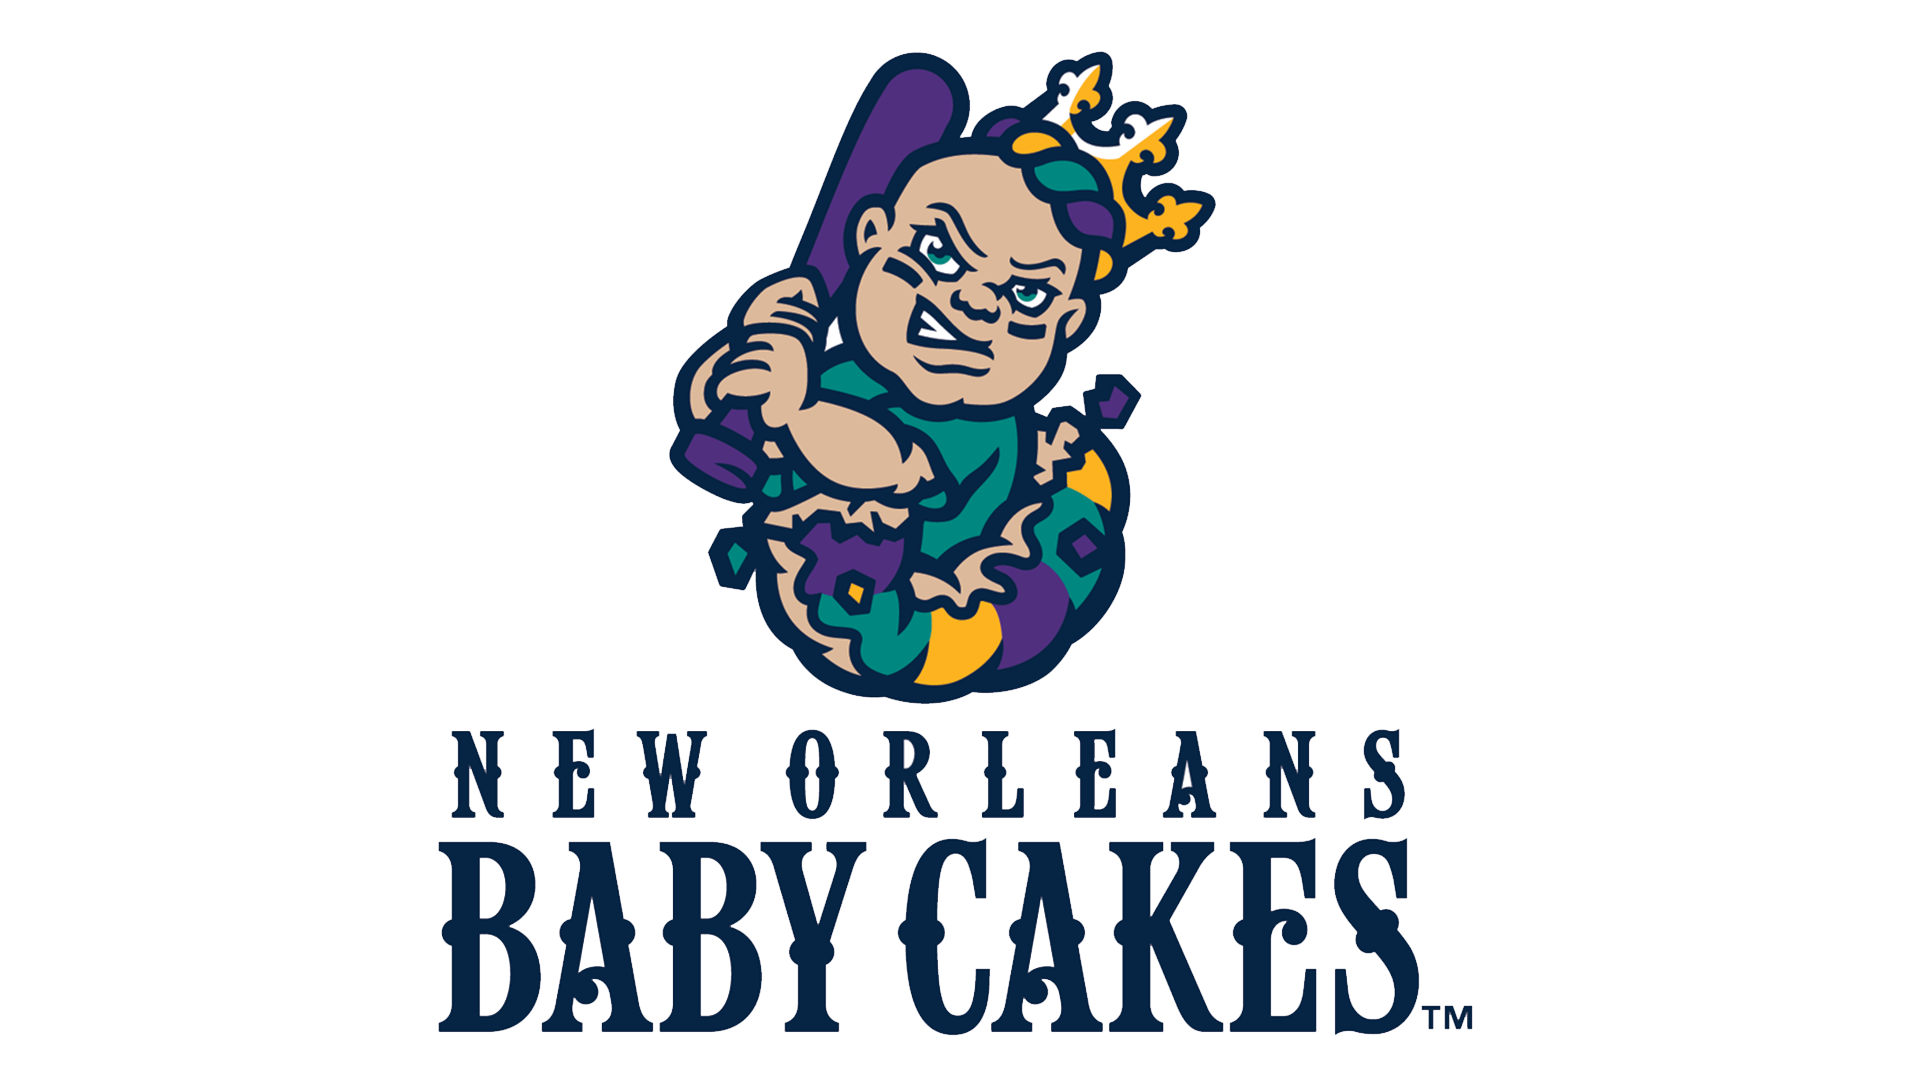 Meaning New Orleans Baby Cakes Logo And Symbol History